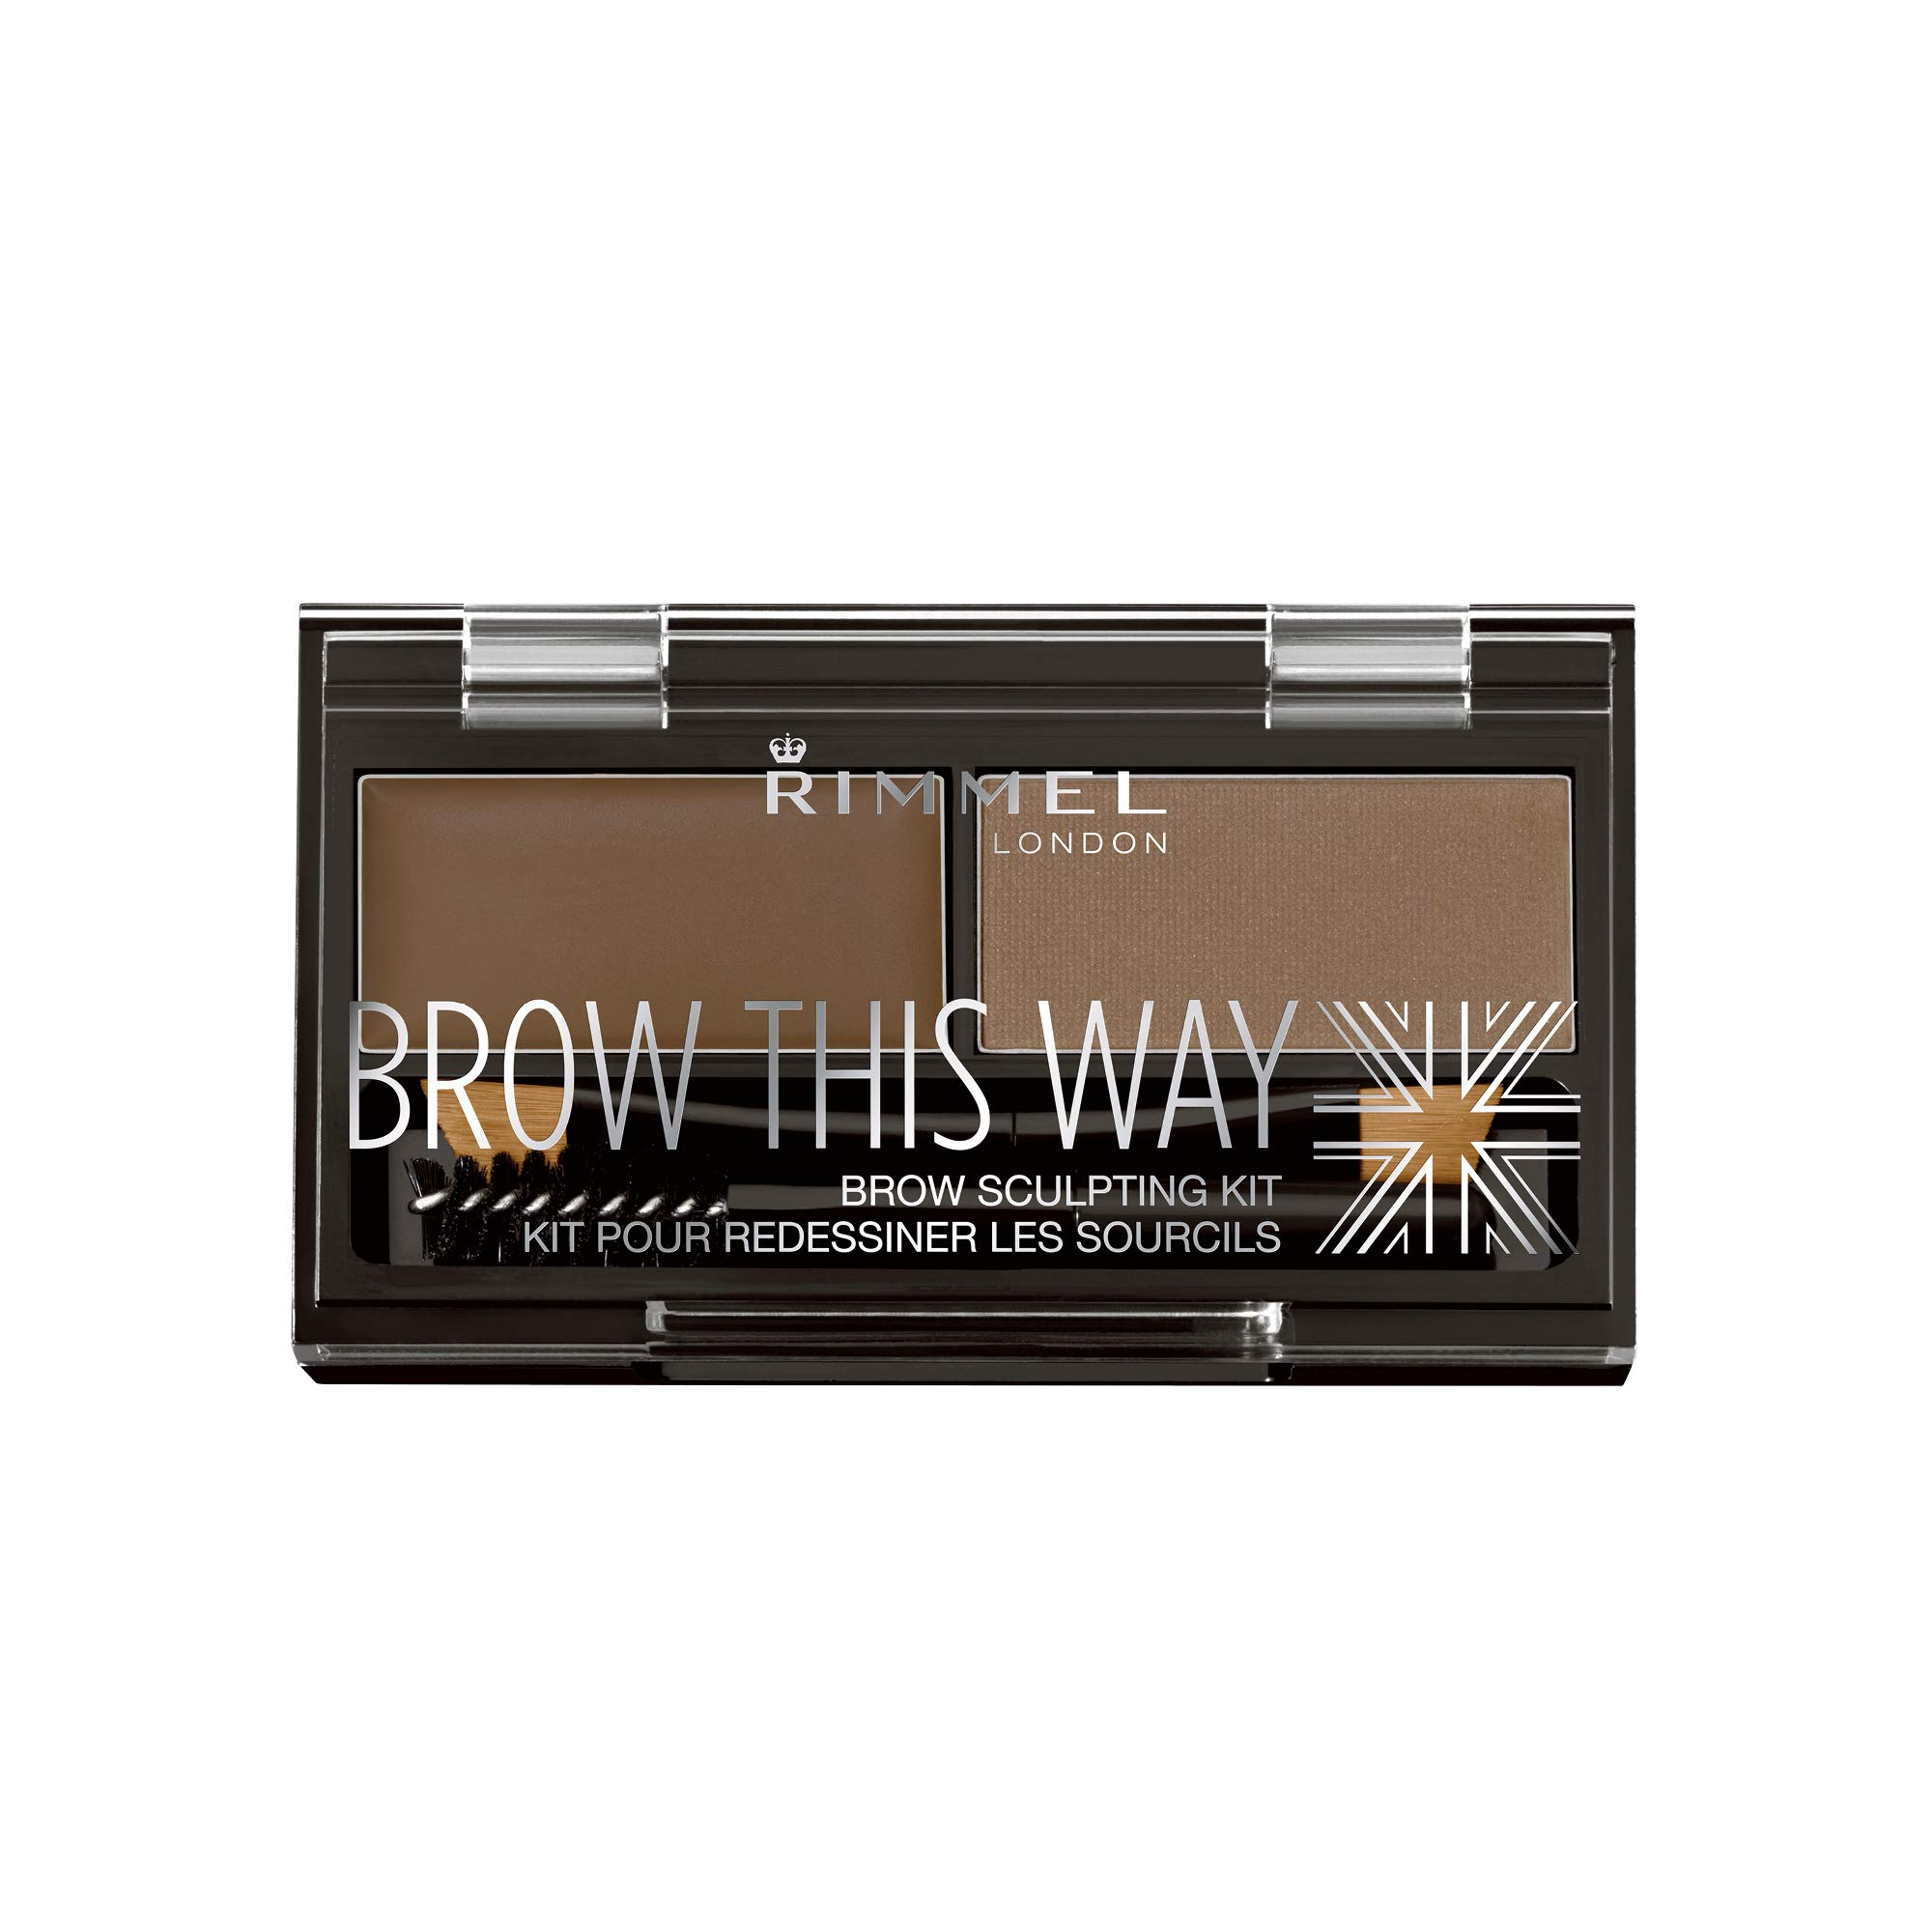 Rimmel - Rimmel Brow This Way Sculpting Kit, Medium Brown, Powder 0.04 oz., Wax 0.03 Oz, Brow Sculpting & Styling Kit with Eyebrow Wax & Setting Powder